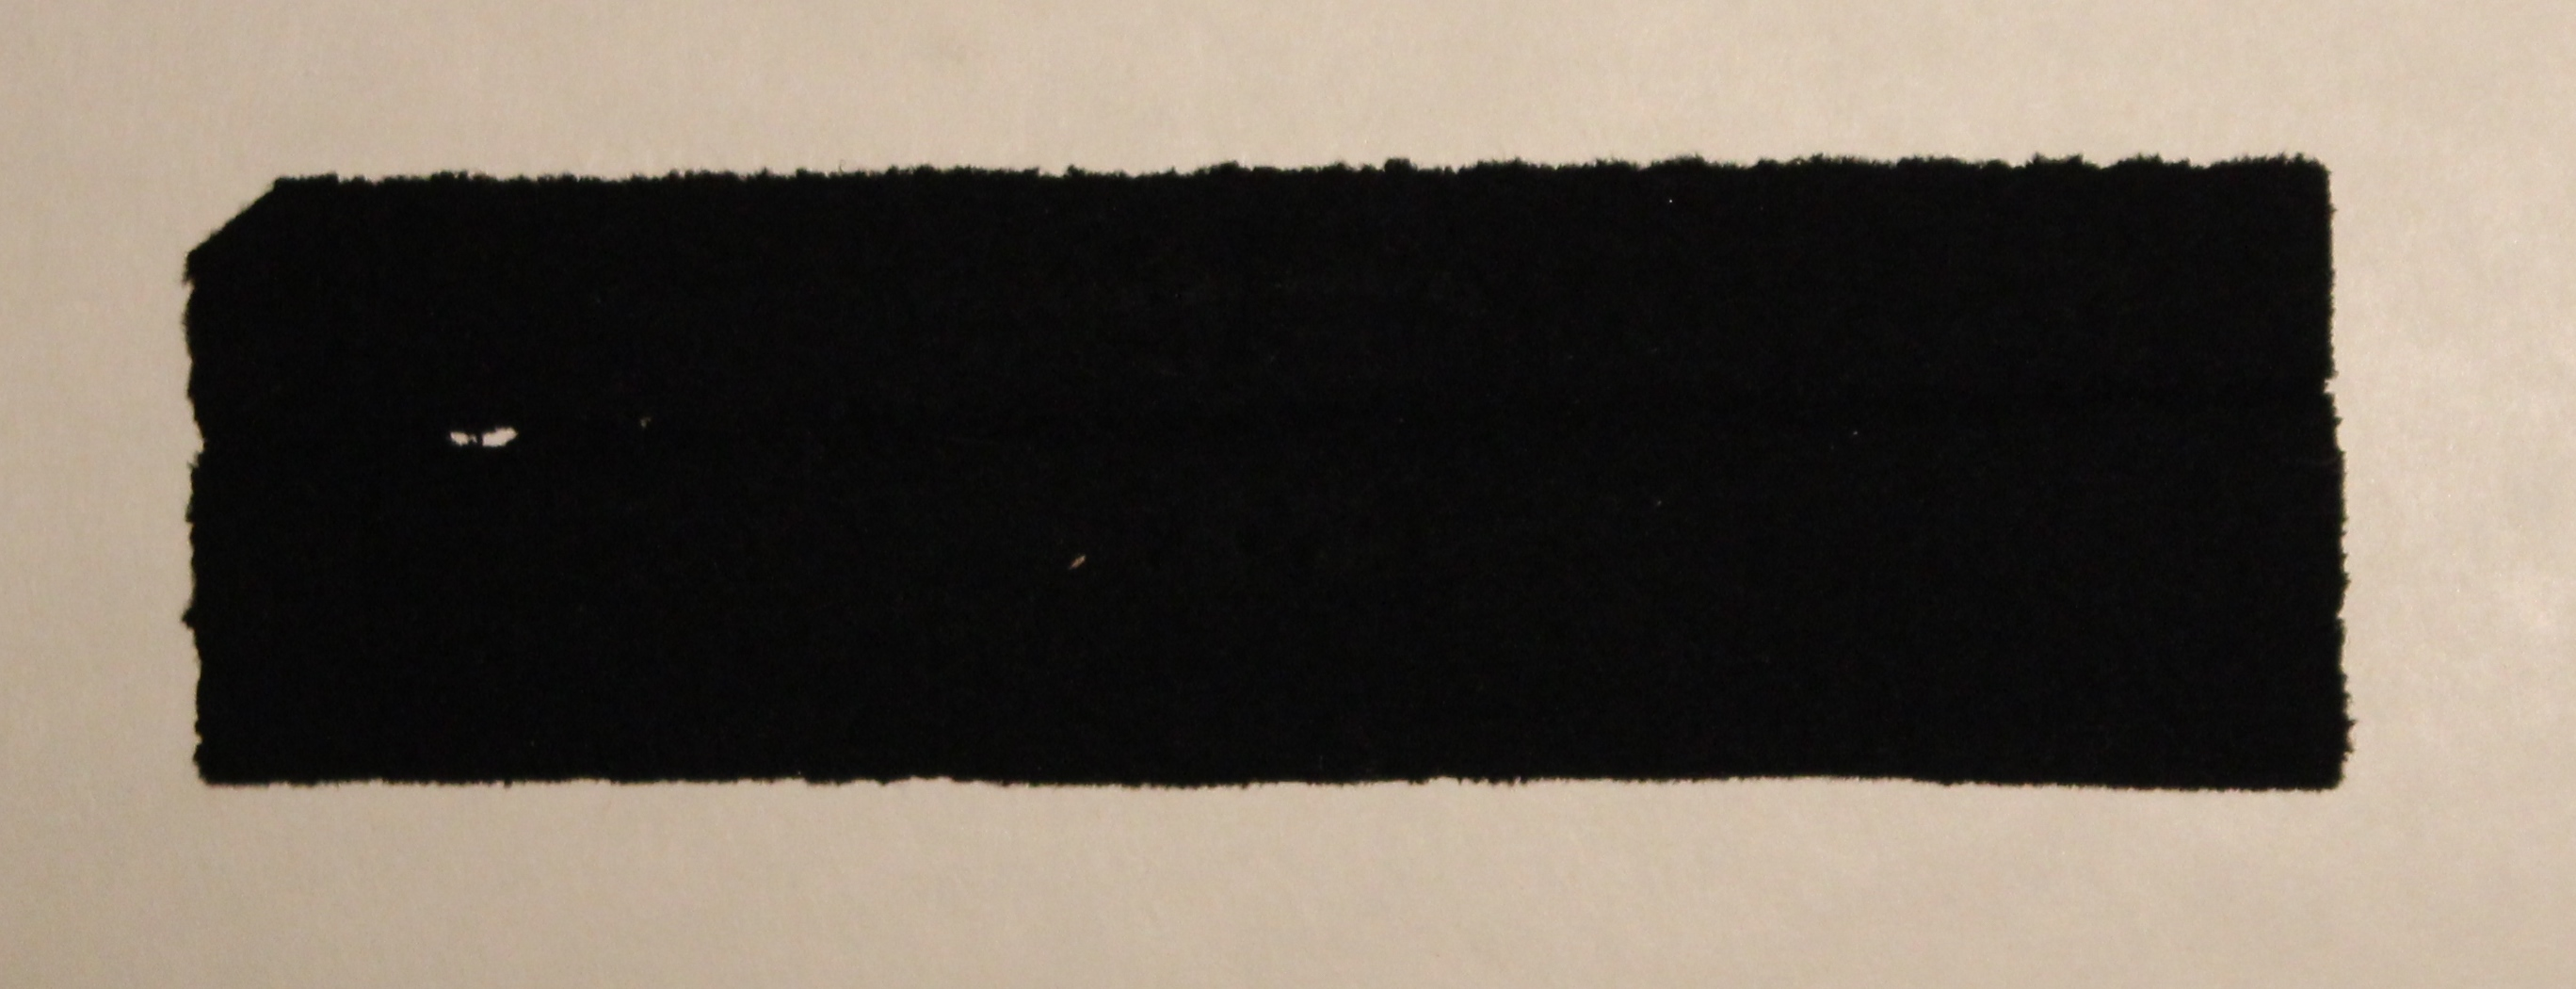 Fragment of Mrs. Lincoln's Funeral Dress